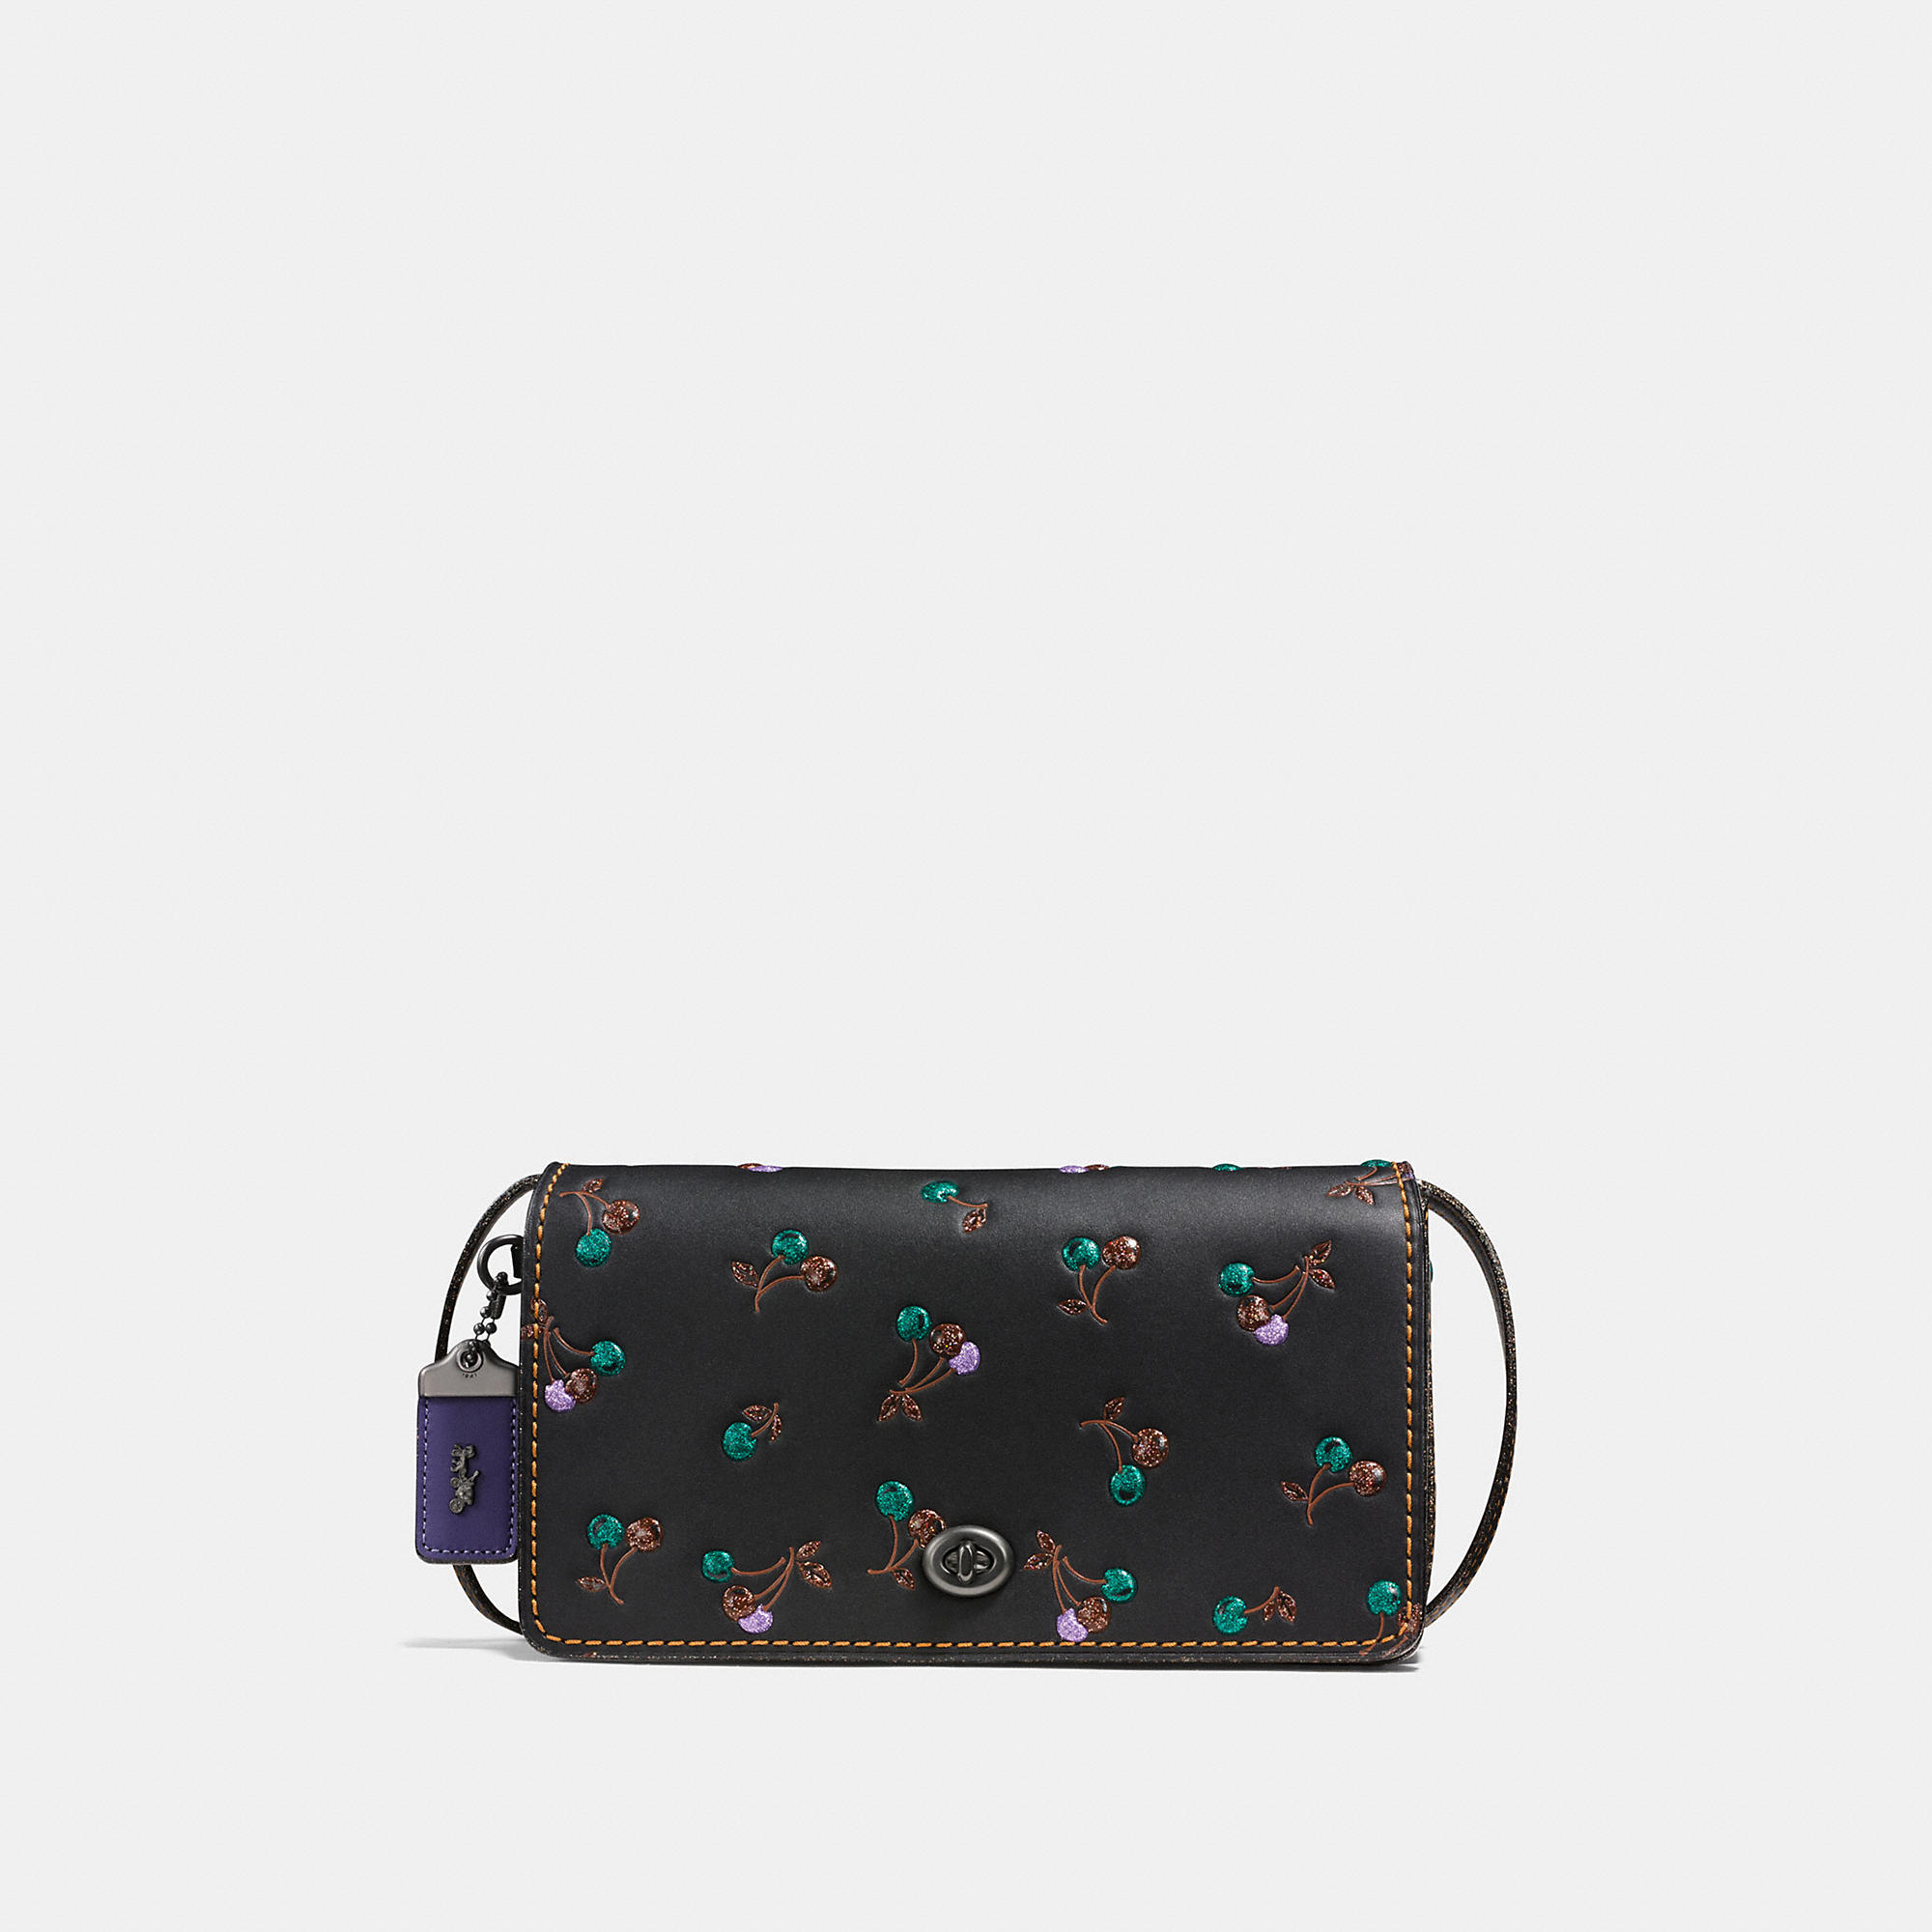 Coach Dinky In Glovetanned Leather With Cherry Print